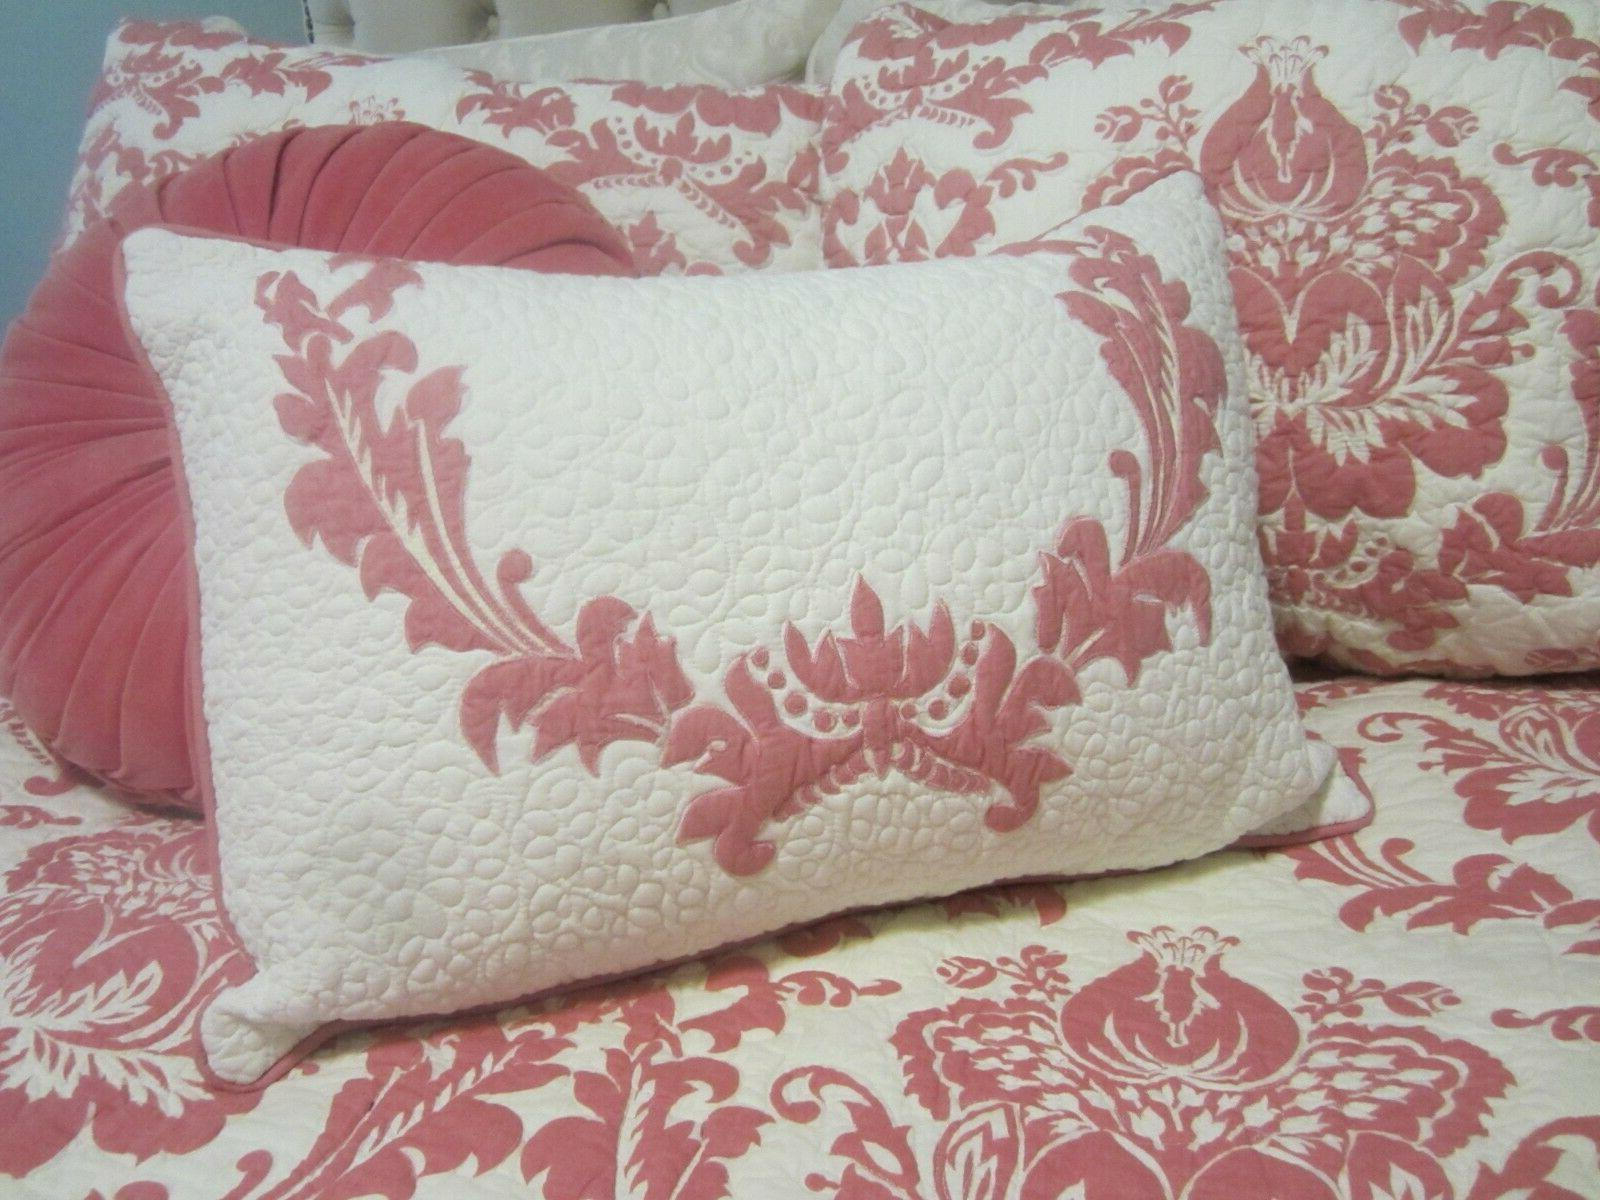 AMITY HOME PINK DAMASK TWIN SZ 2 PC QUILT SET INDIA